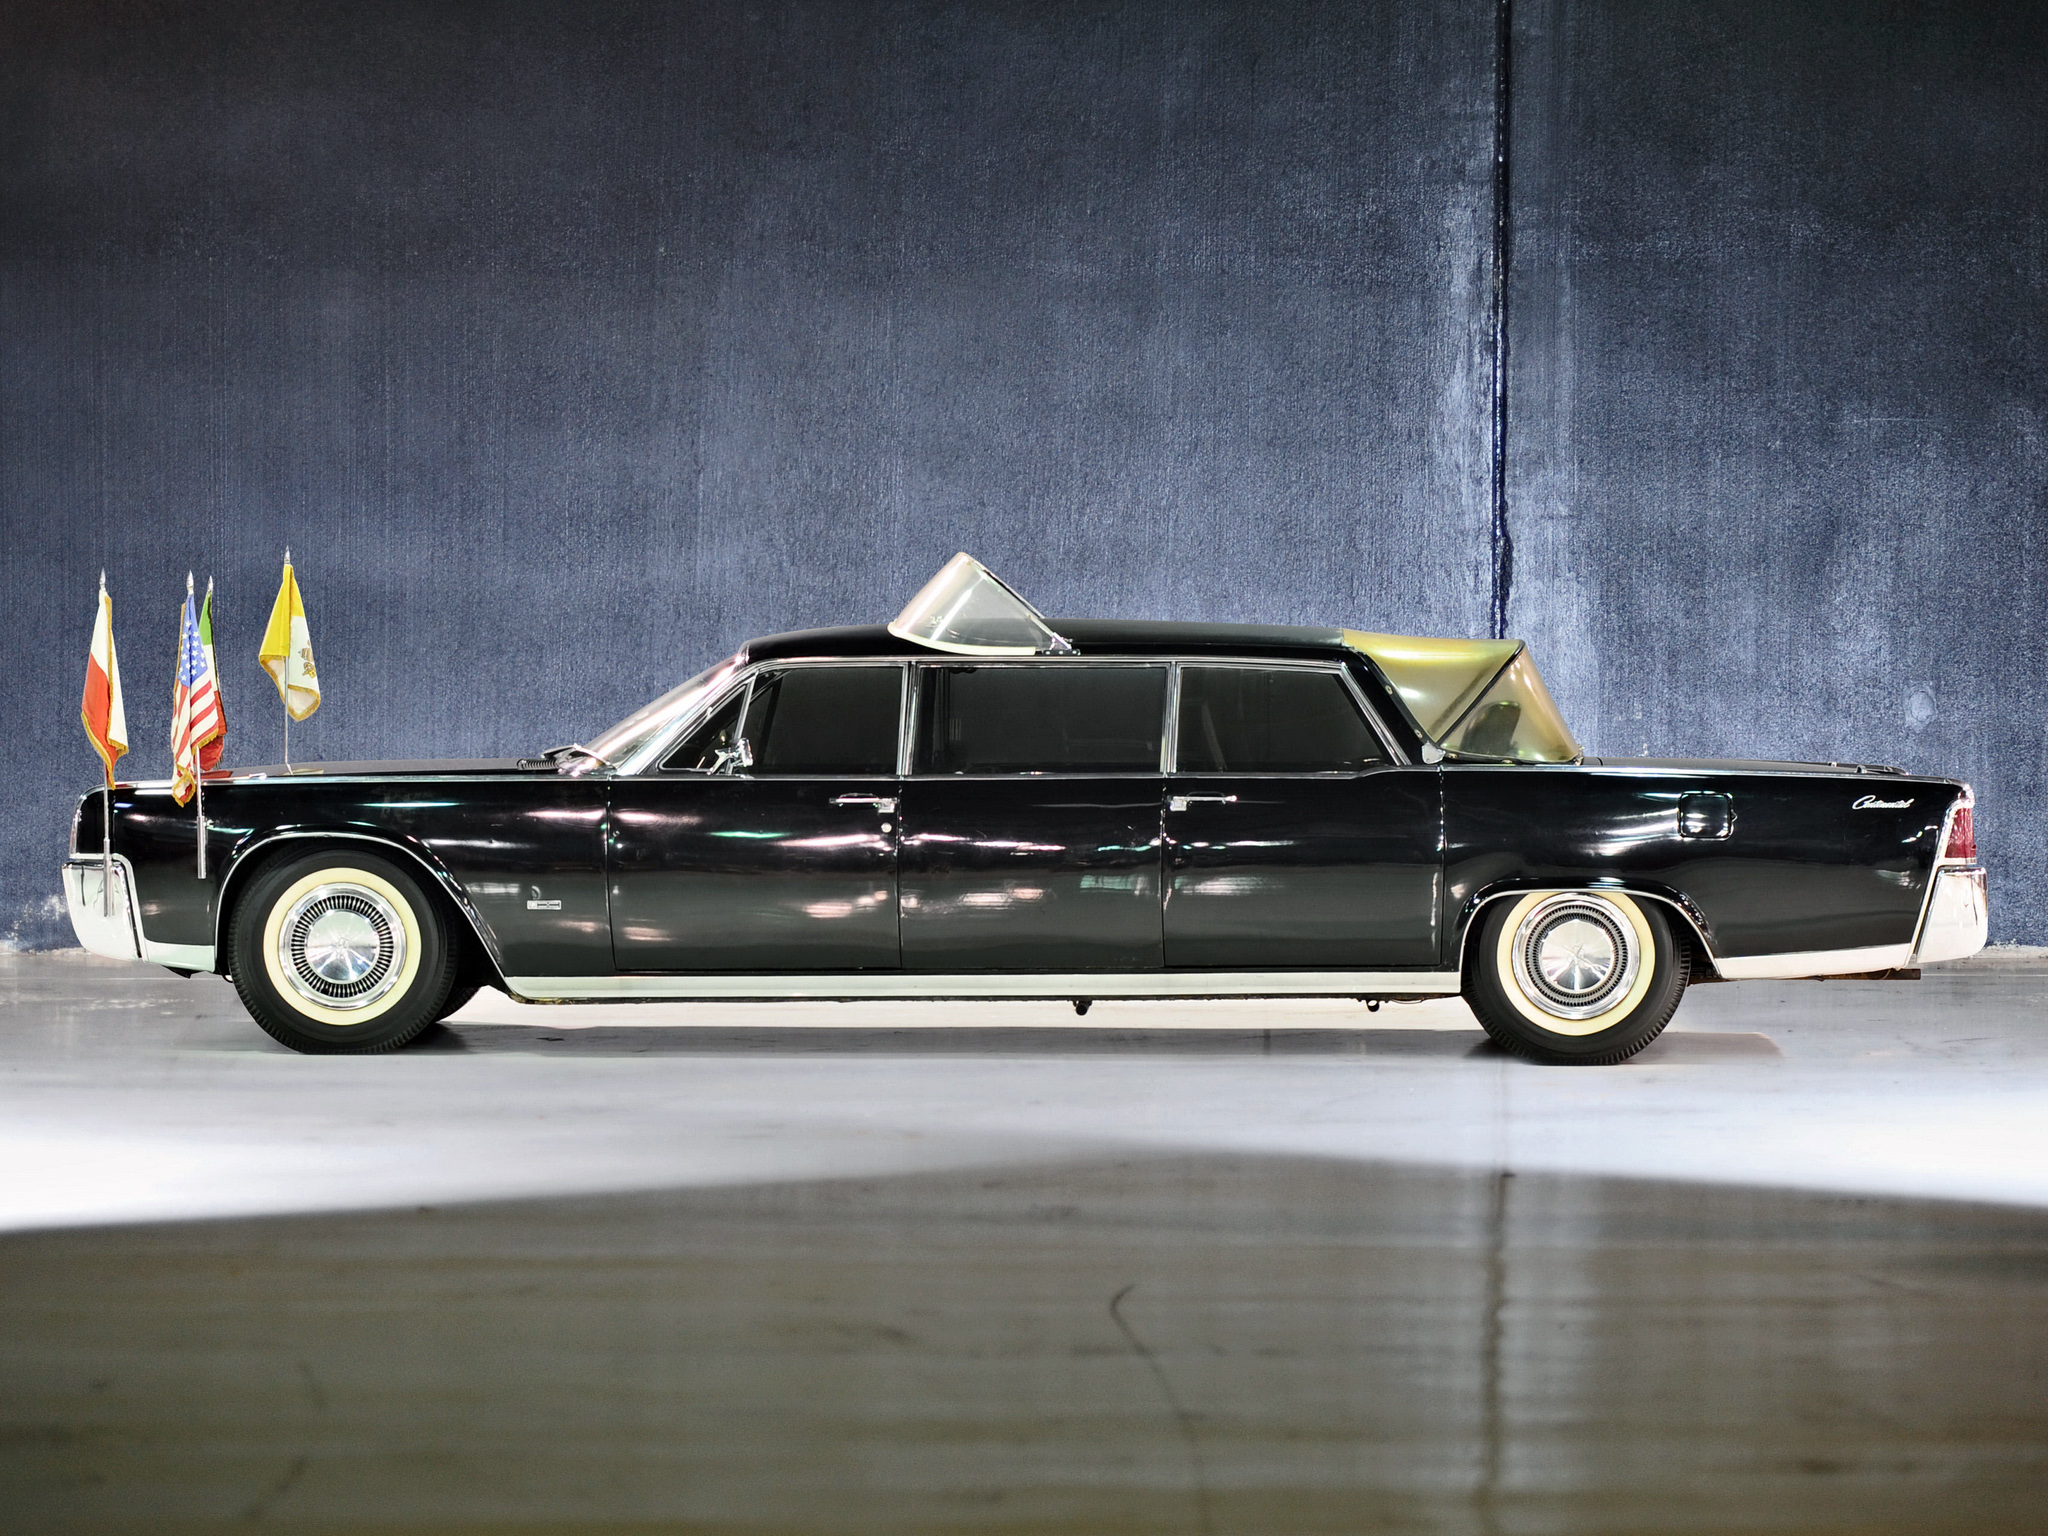 1964 lincoln continental limousine popemobile by lehmann. Black Bedroom Furniture Sets. Home Design Ideas